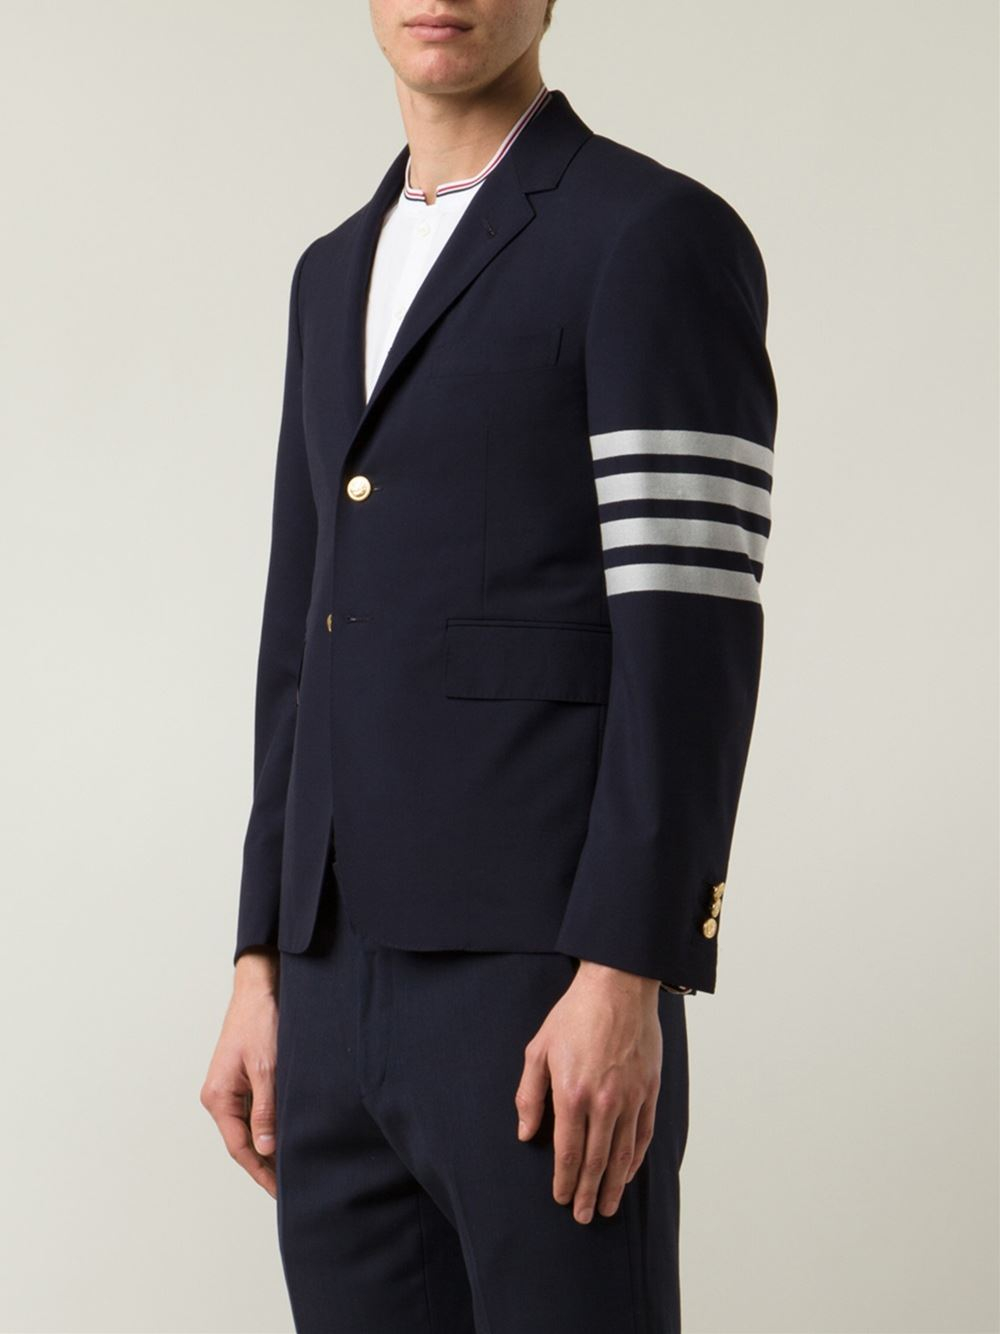 thom-browne-blue-striped-arm-blazer-product-1-331947280-normal